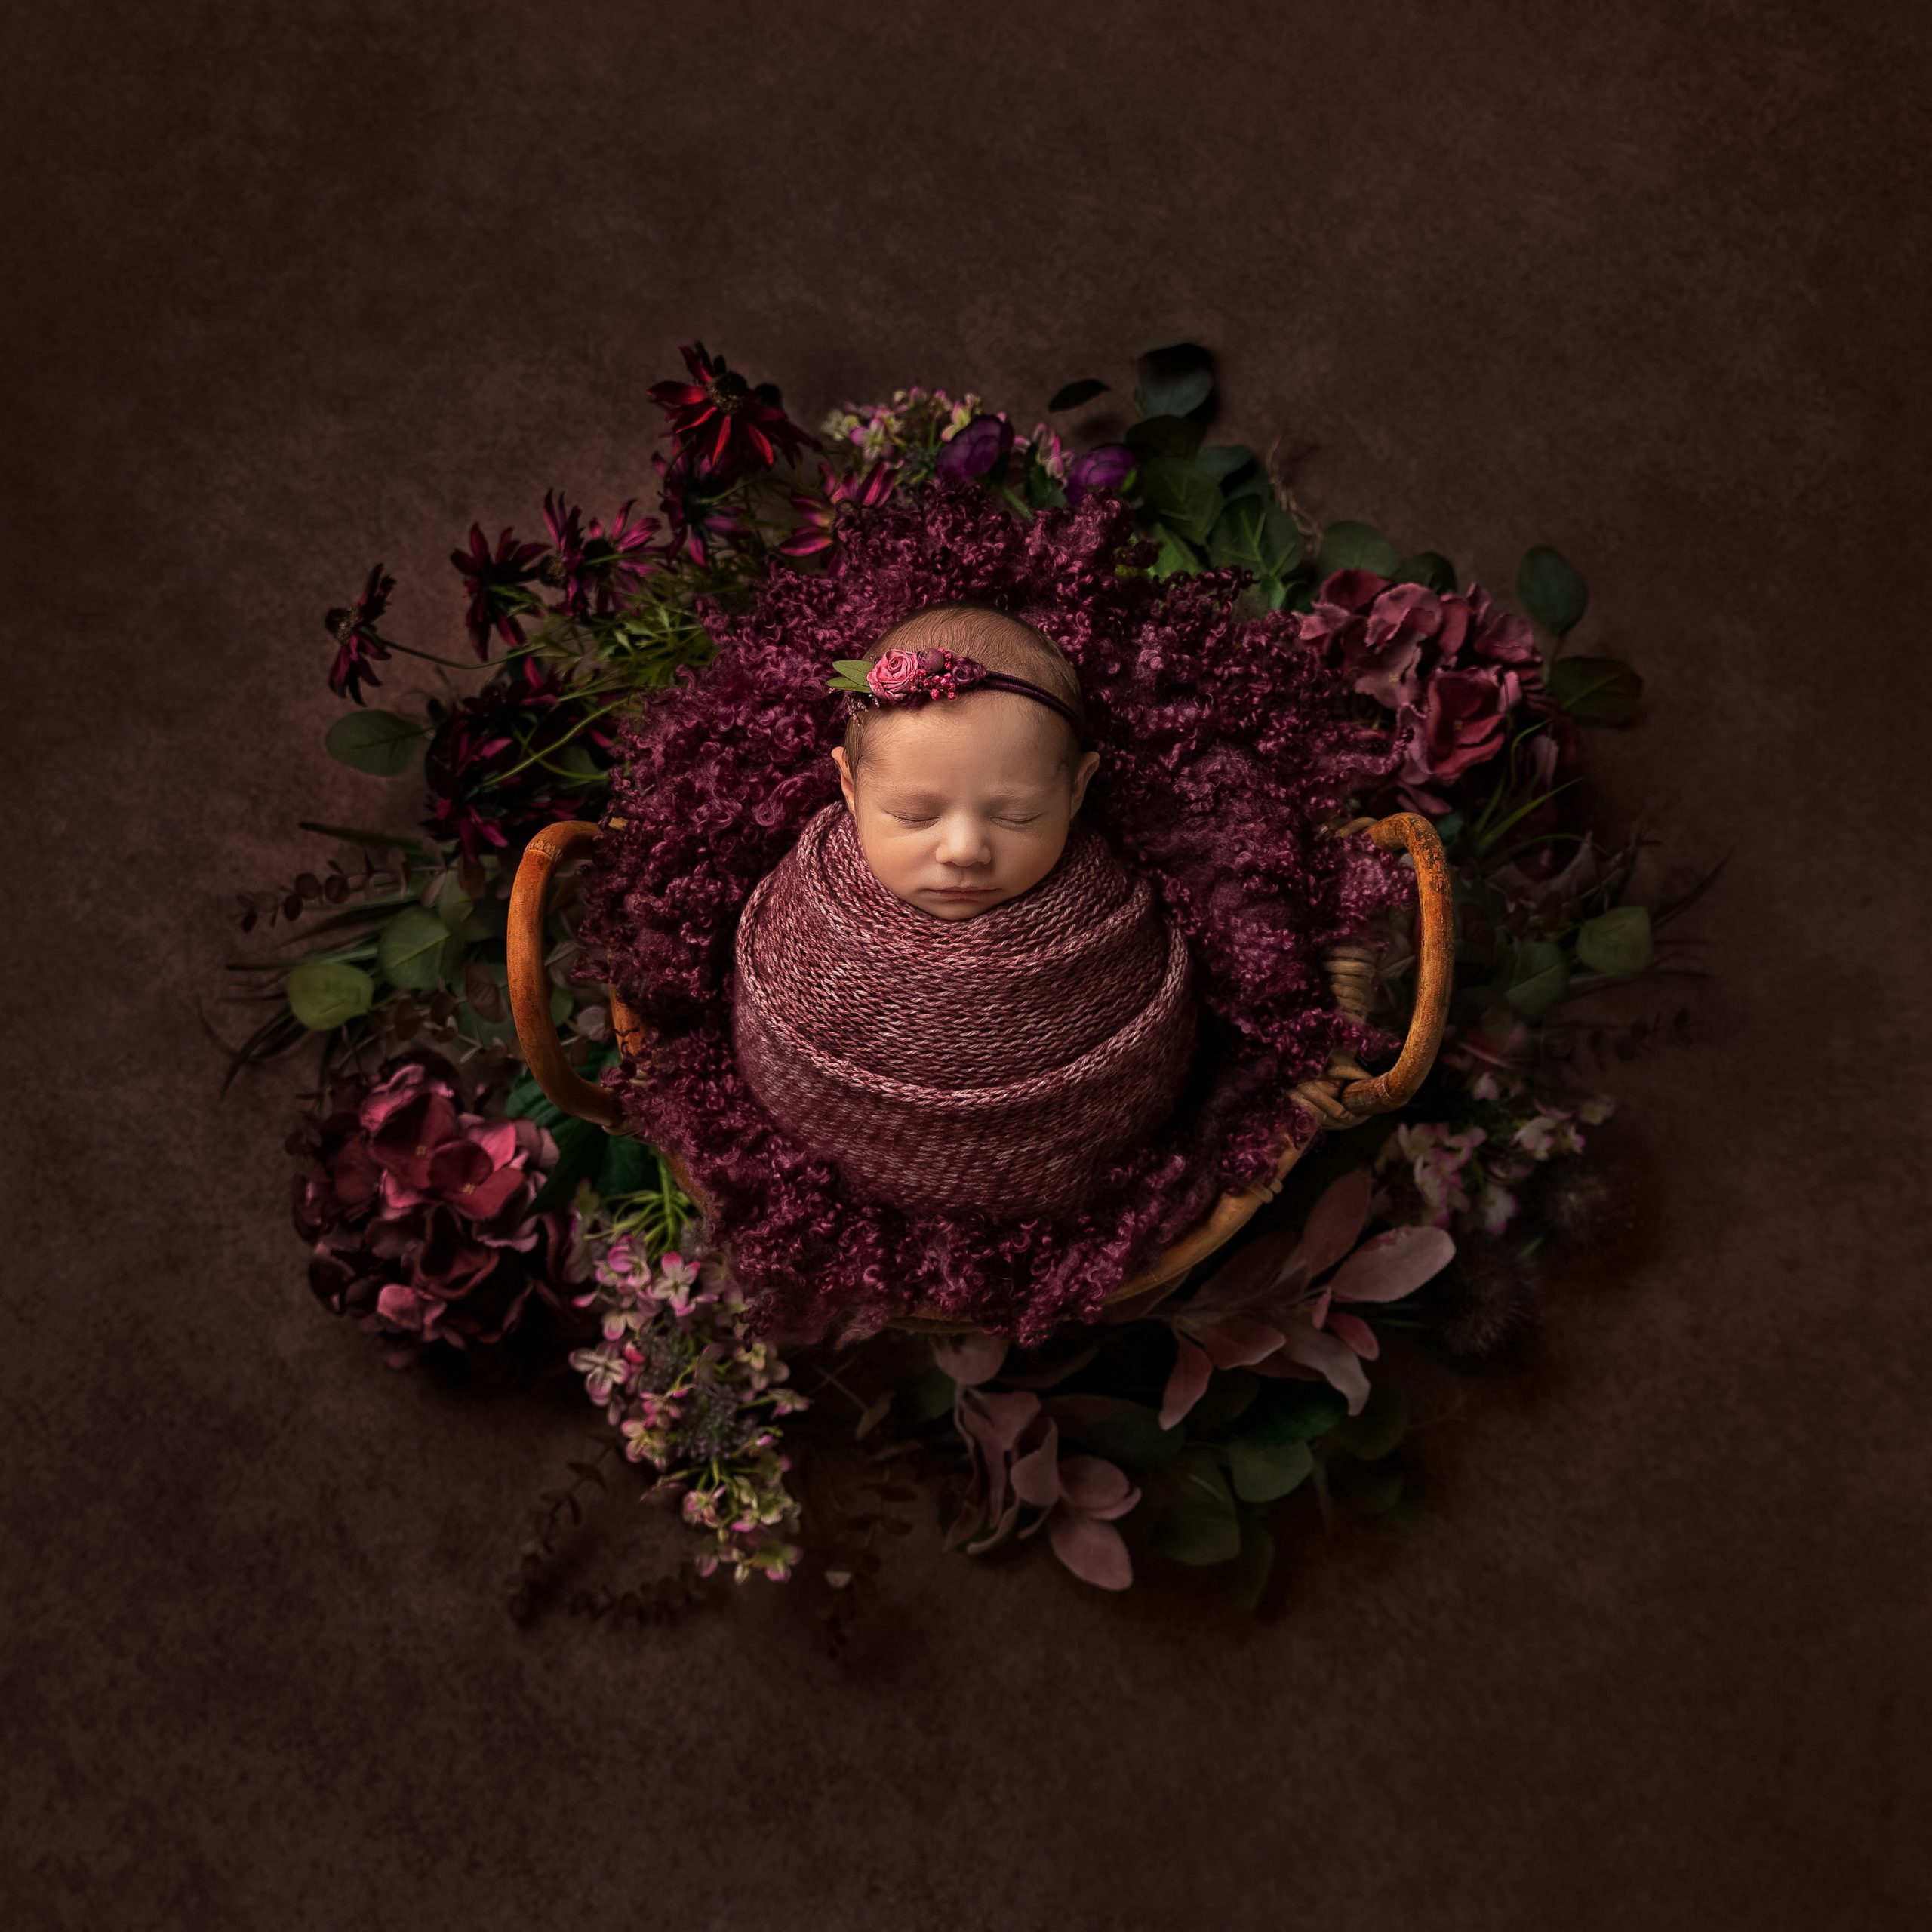 Purple themed newborn shoot with flowers in a basket as part of my Master Craftsman in Newborn Photography panel by award winning photographer